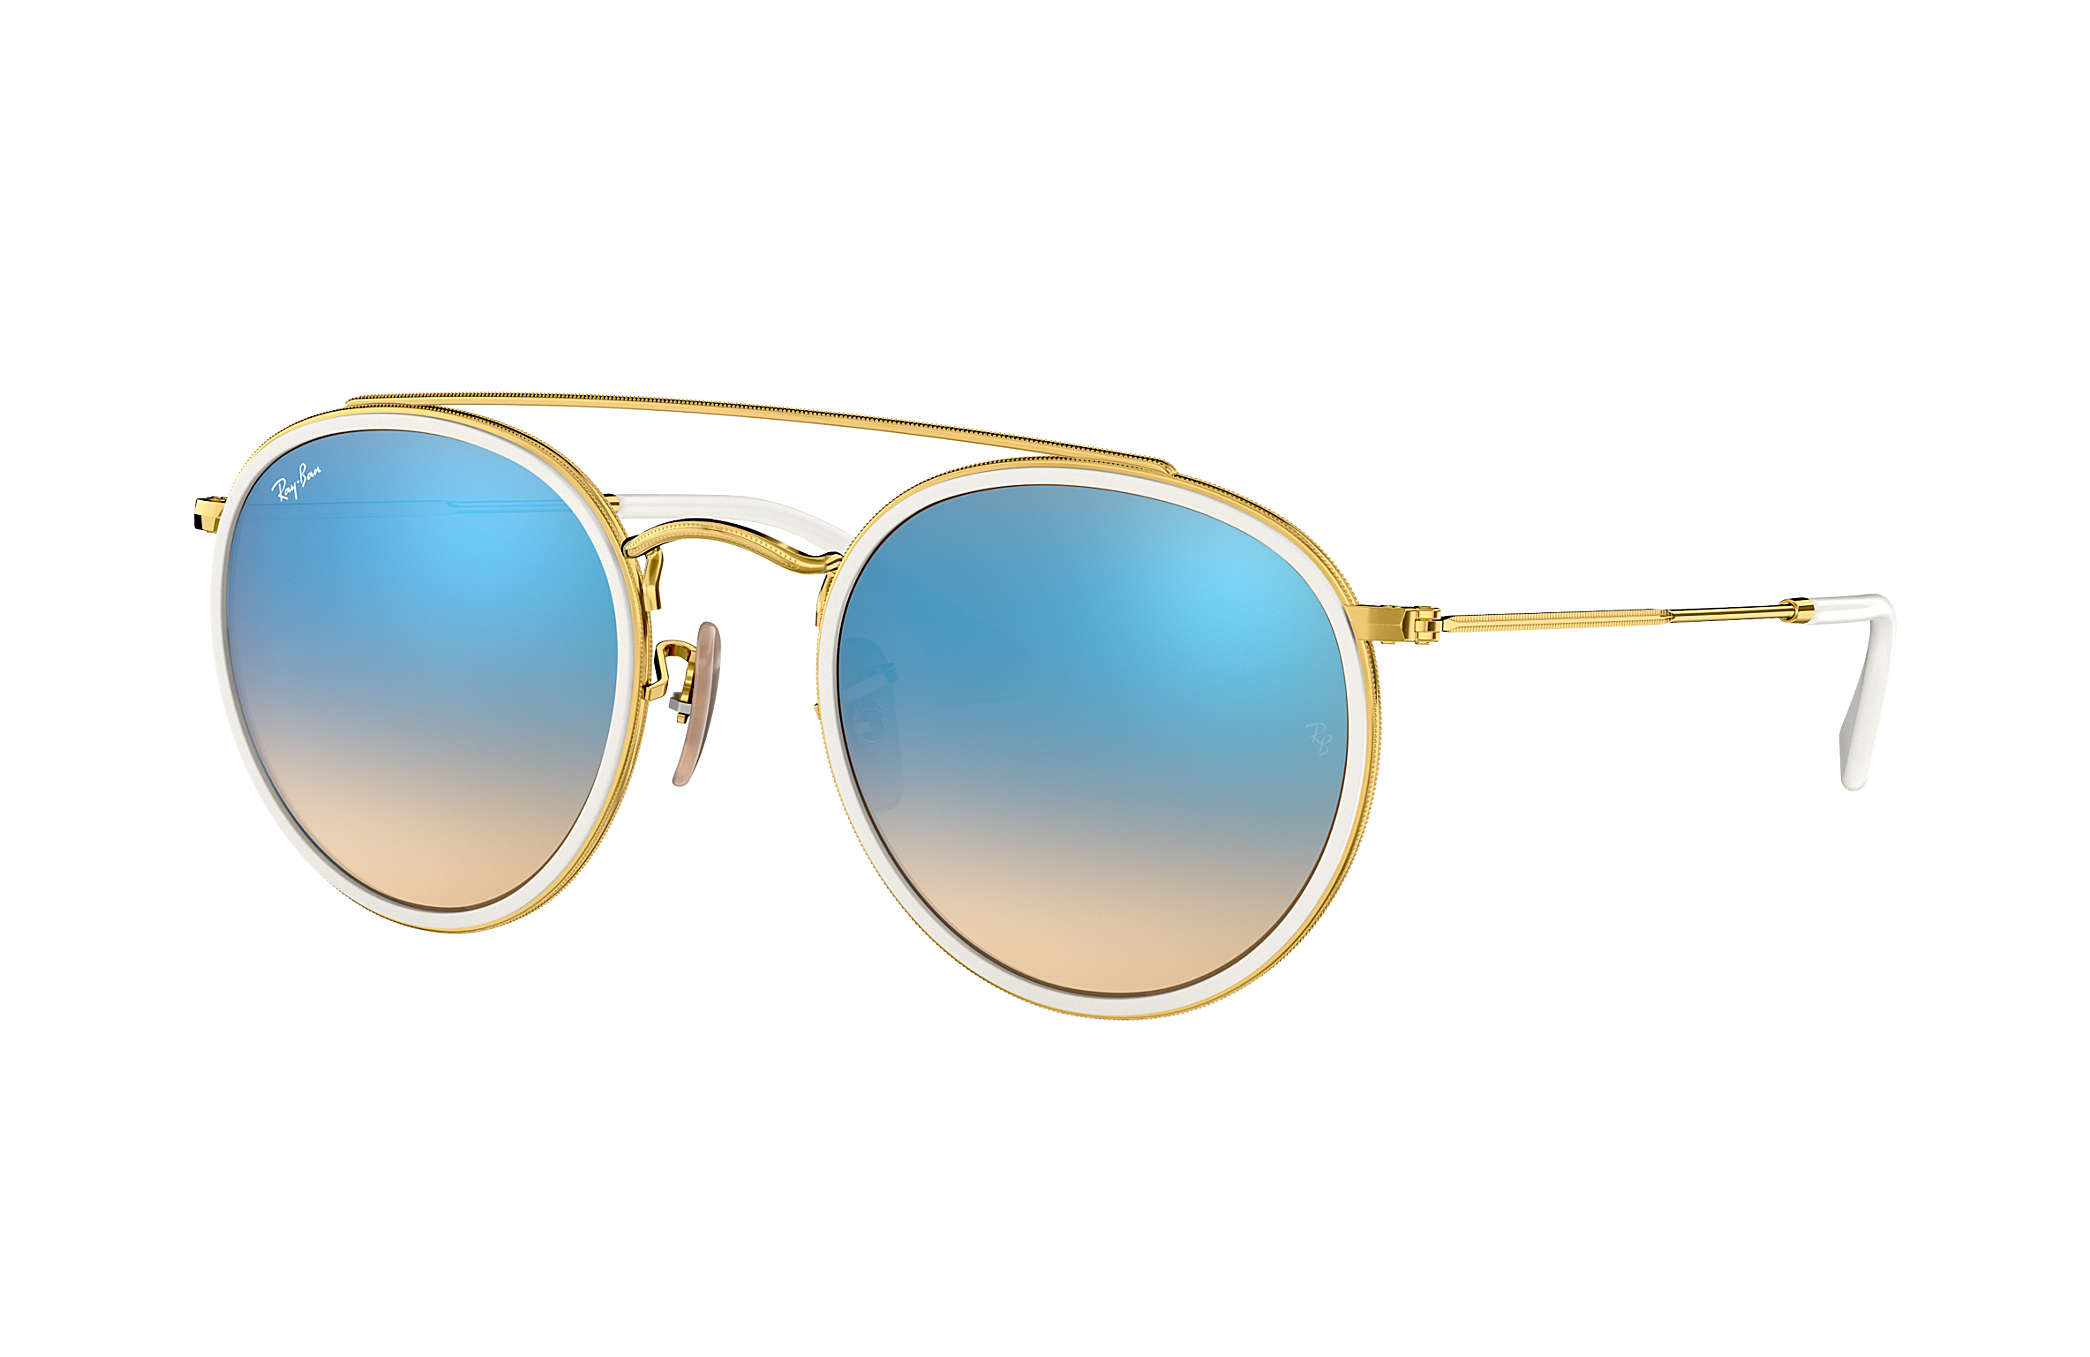 16dccb9f897 Ray-Ban Round Double Bridge RB3647N Gold - Metal - Blue Lenses ...